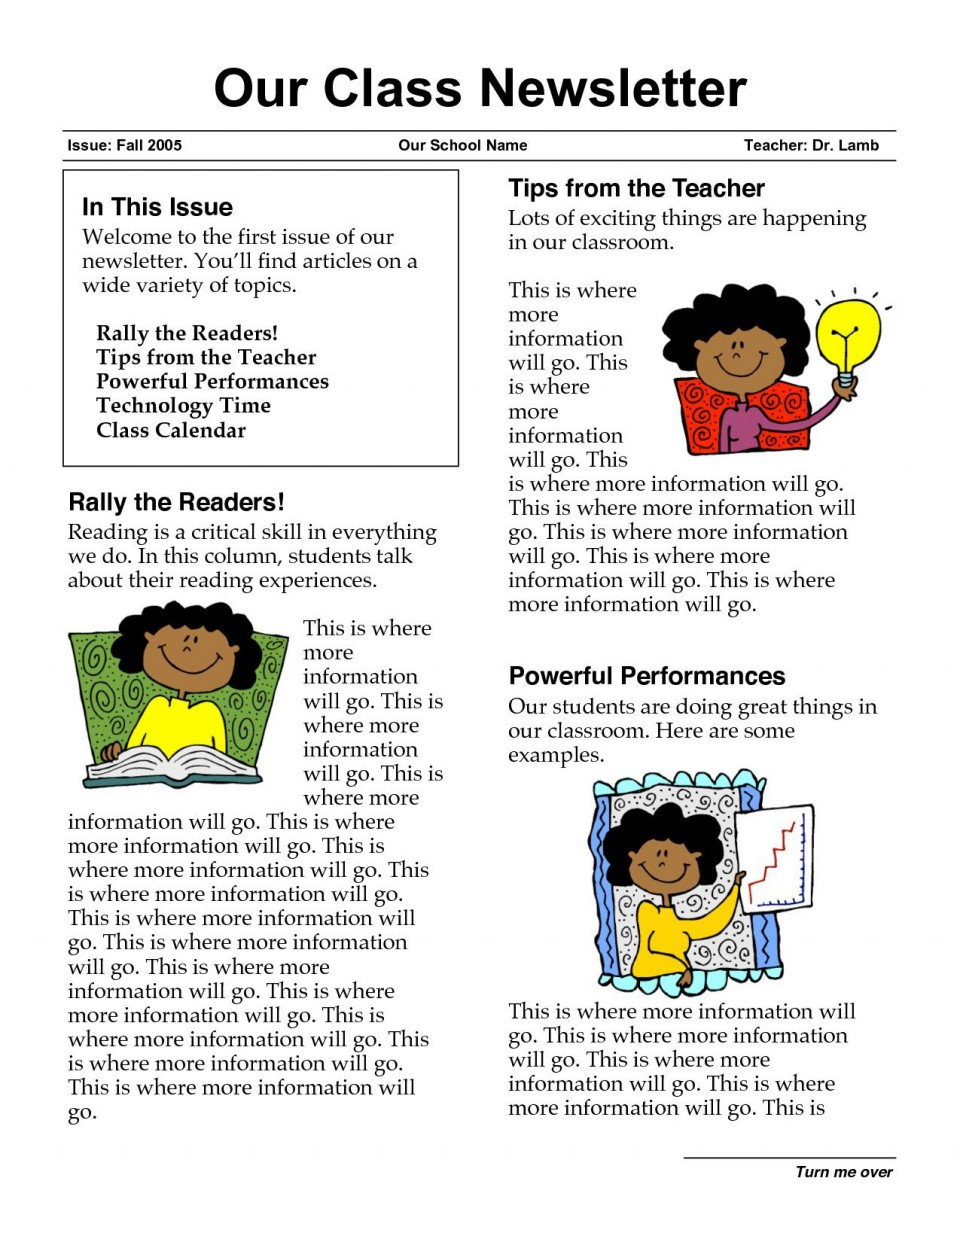 003 Fascinating Free Newsletter Template For Teacher Image  Downloadable Editable Preschool960